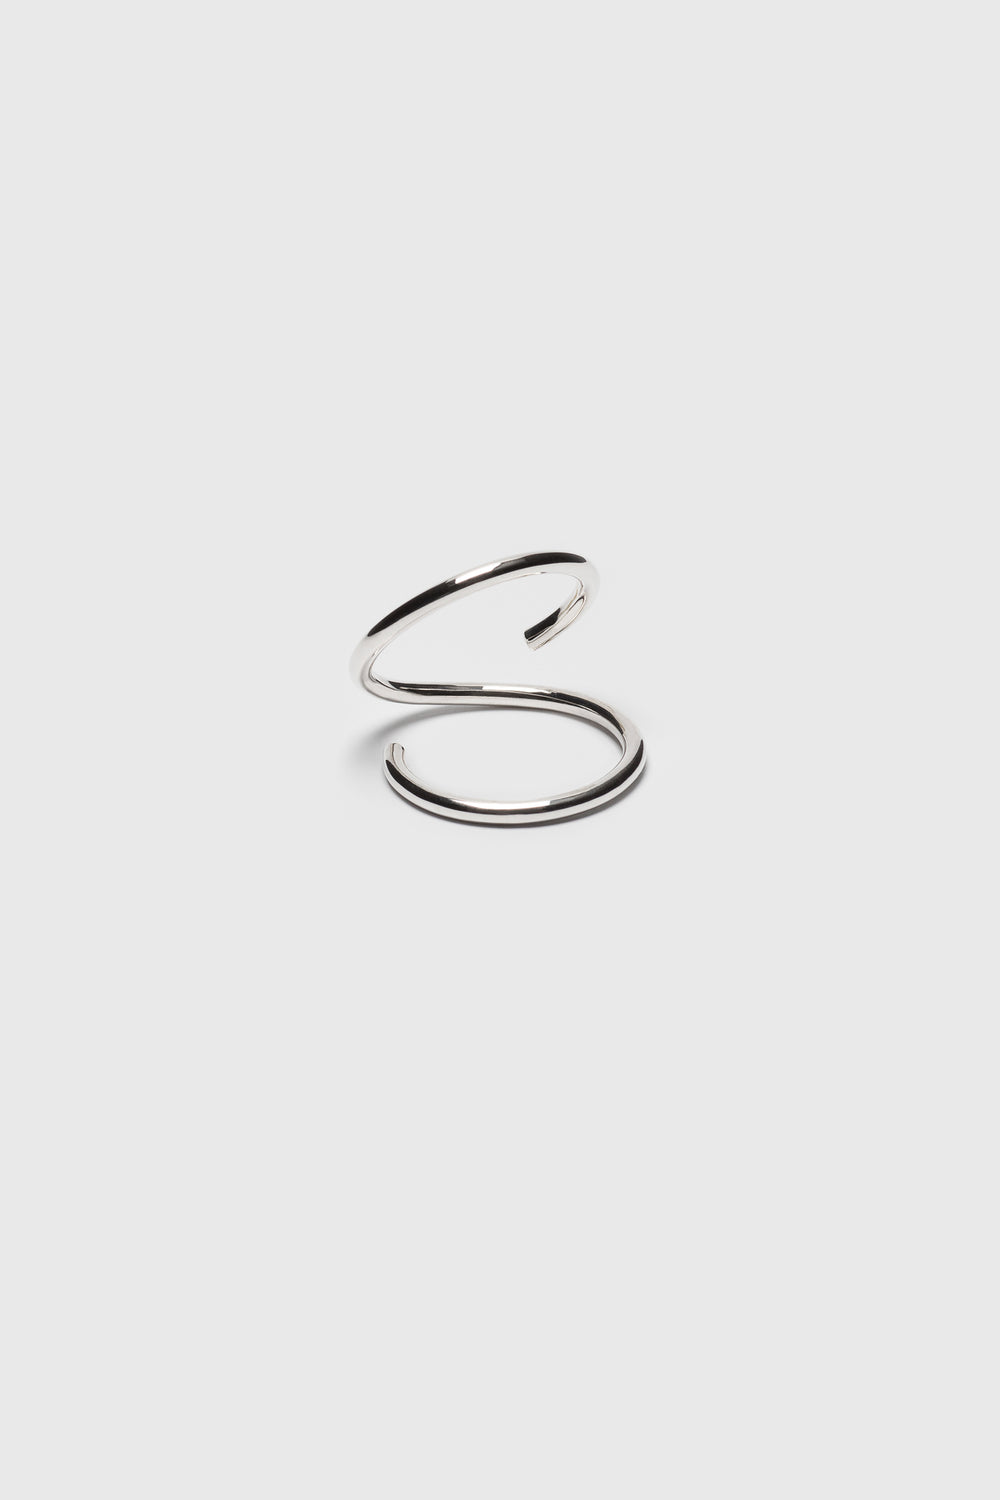 Open spiral ring. Silver jewelry handmade in Berlin.